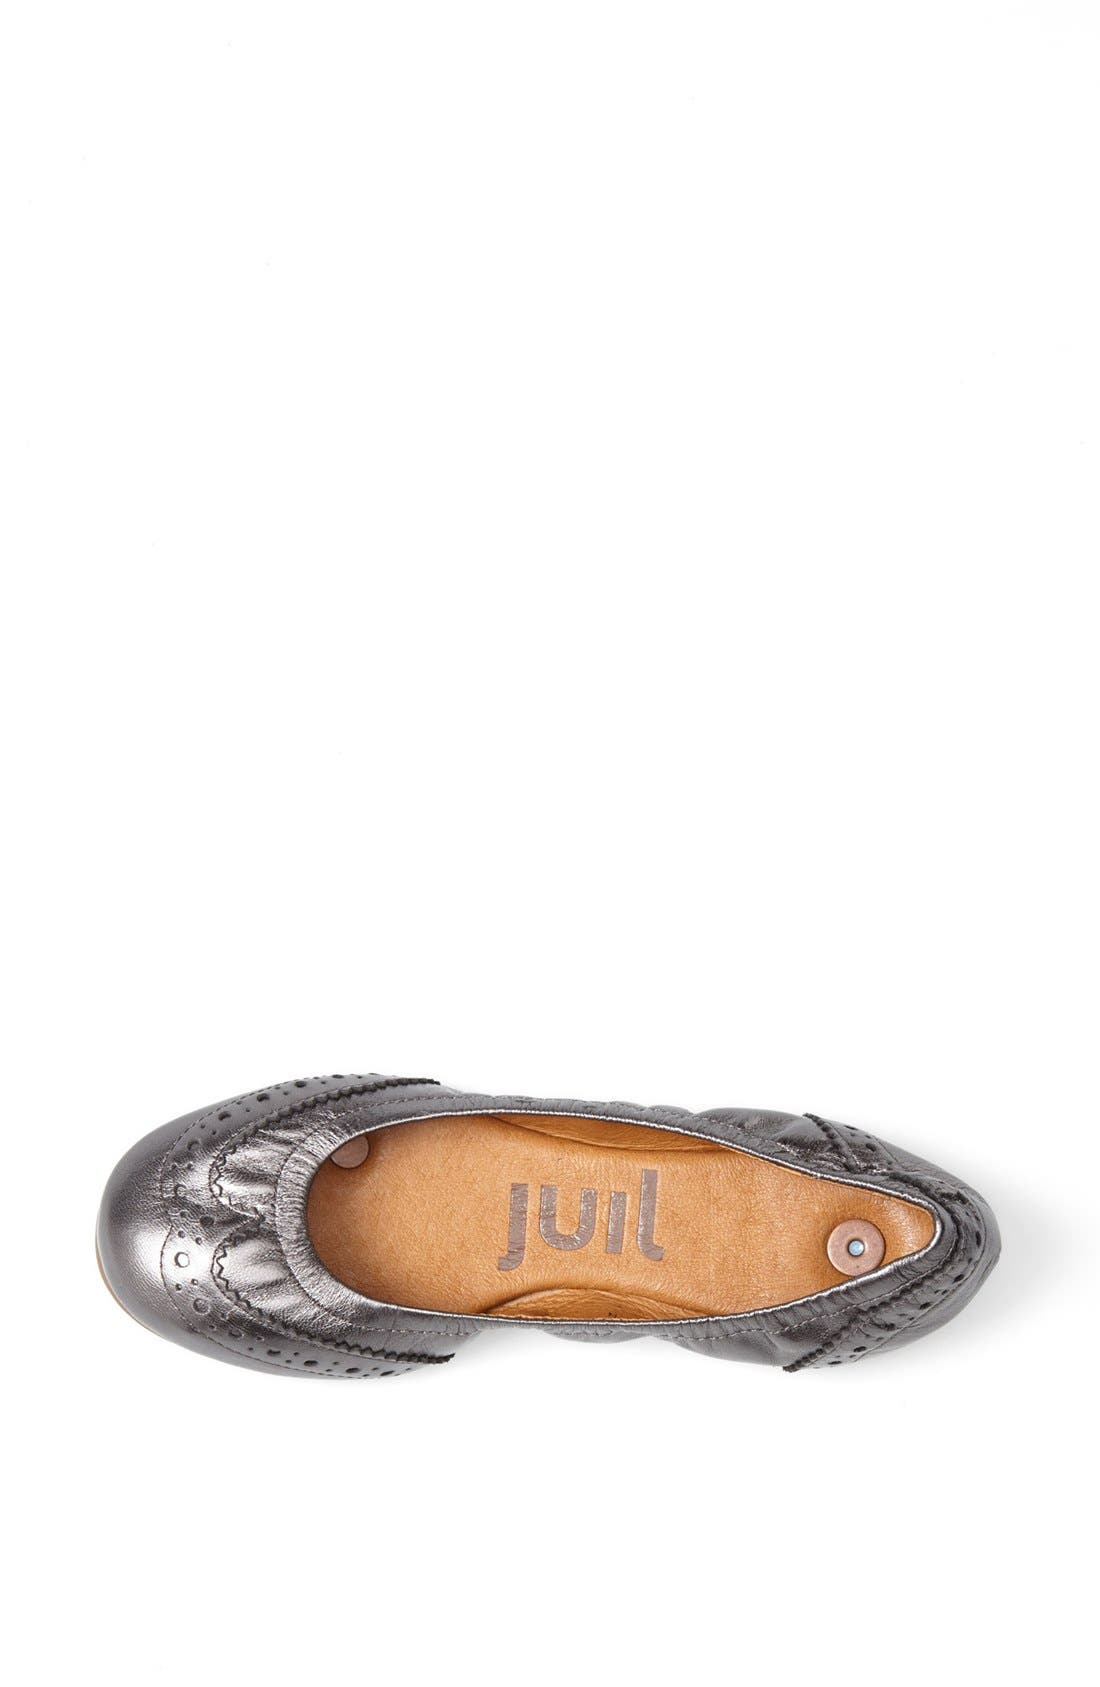 Alternate Image 3  - Juil 'The Wing Tip' Copper Grounded Metallic Leather Flat